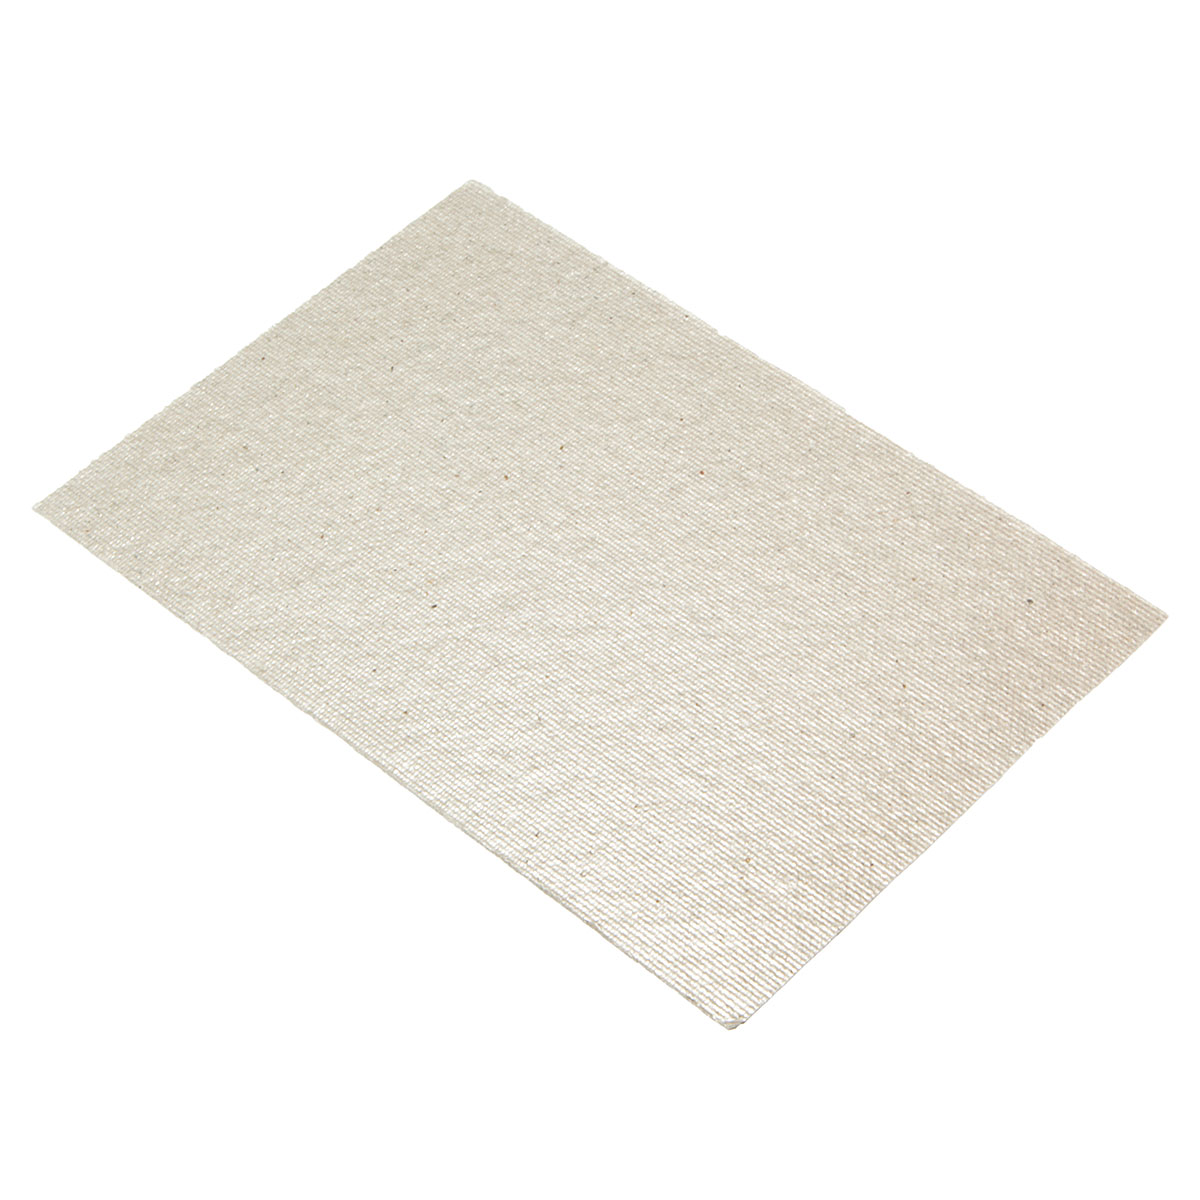 145 x 98mm Microwave Oven Universal Mica Wave Guide Cover Sheet